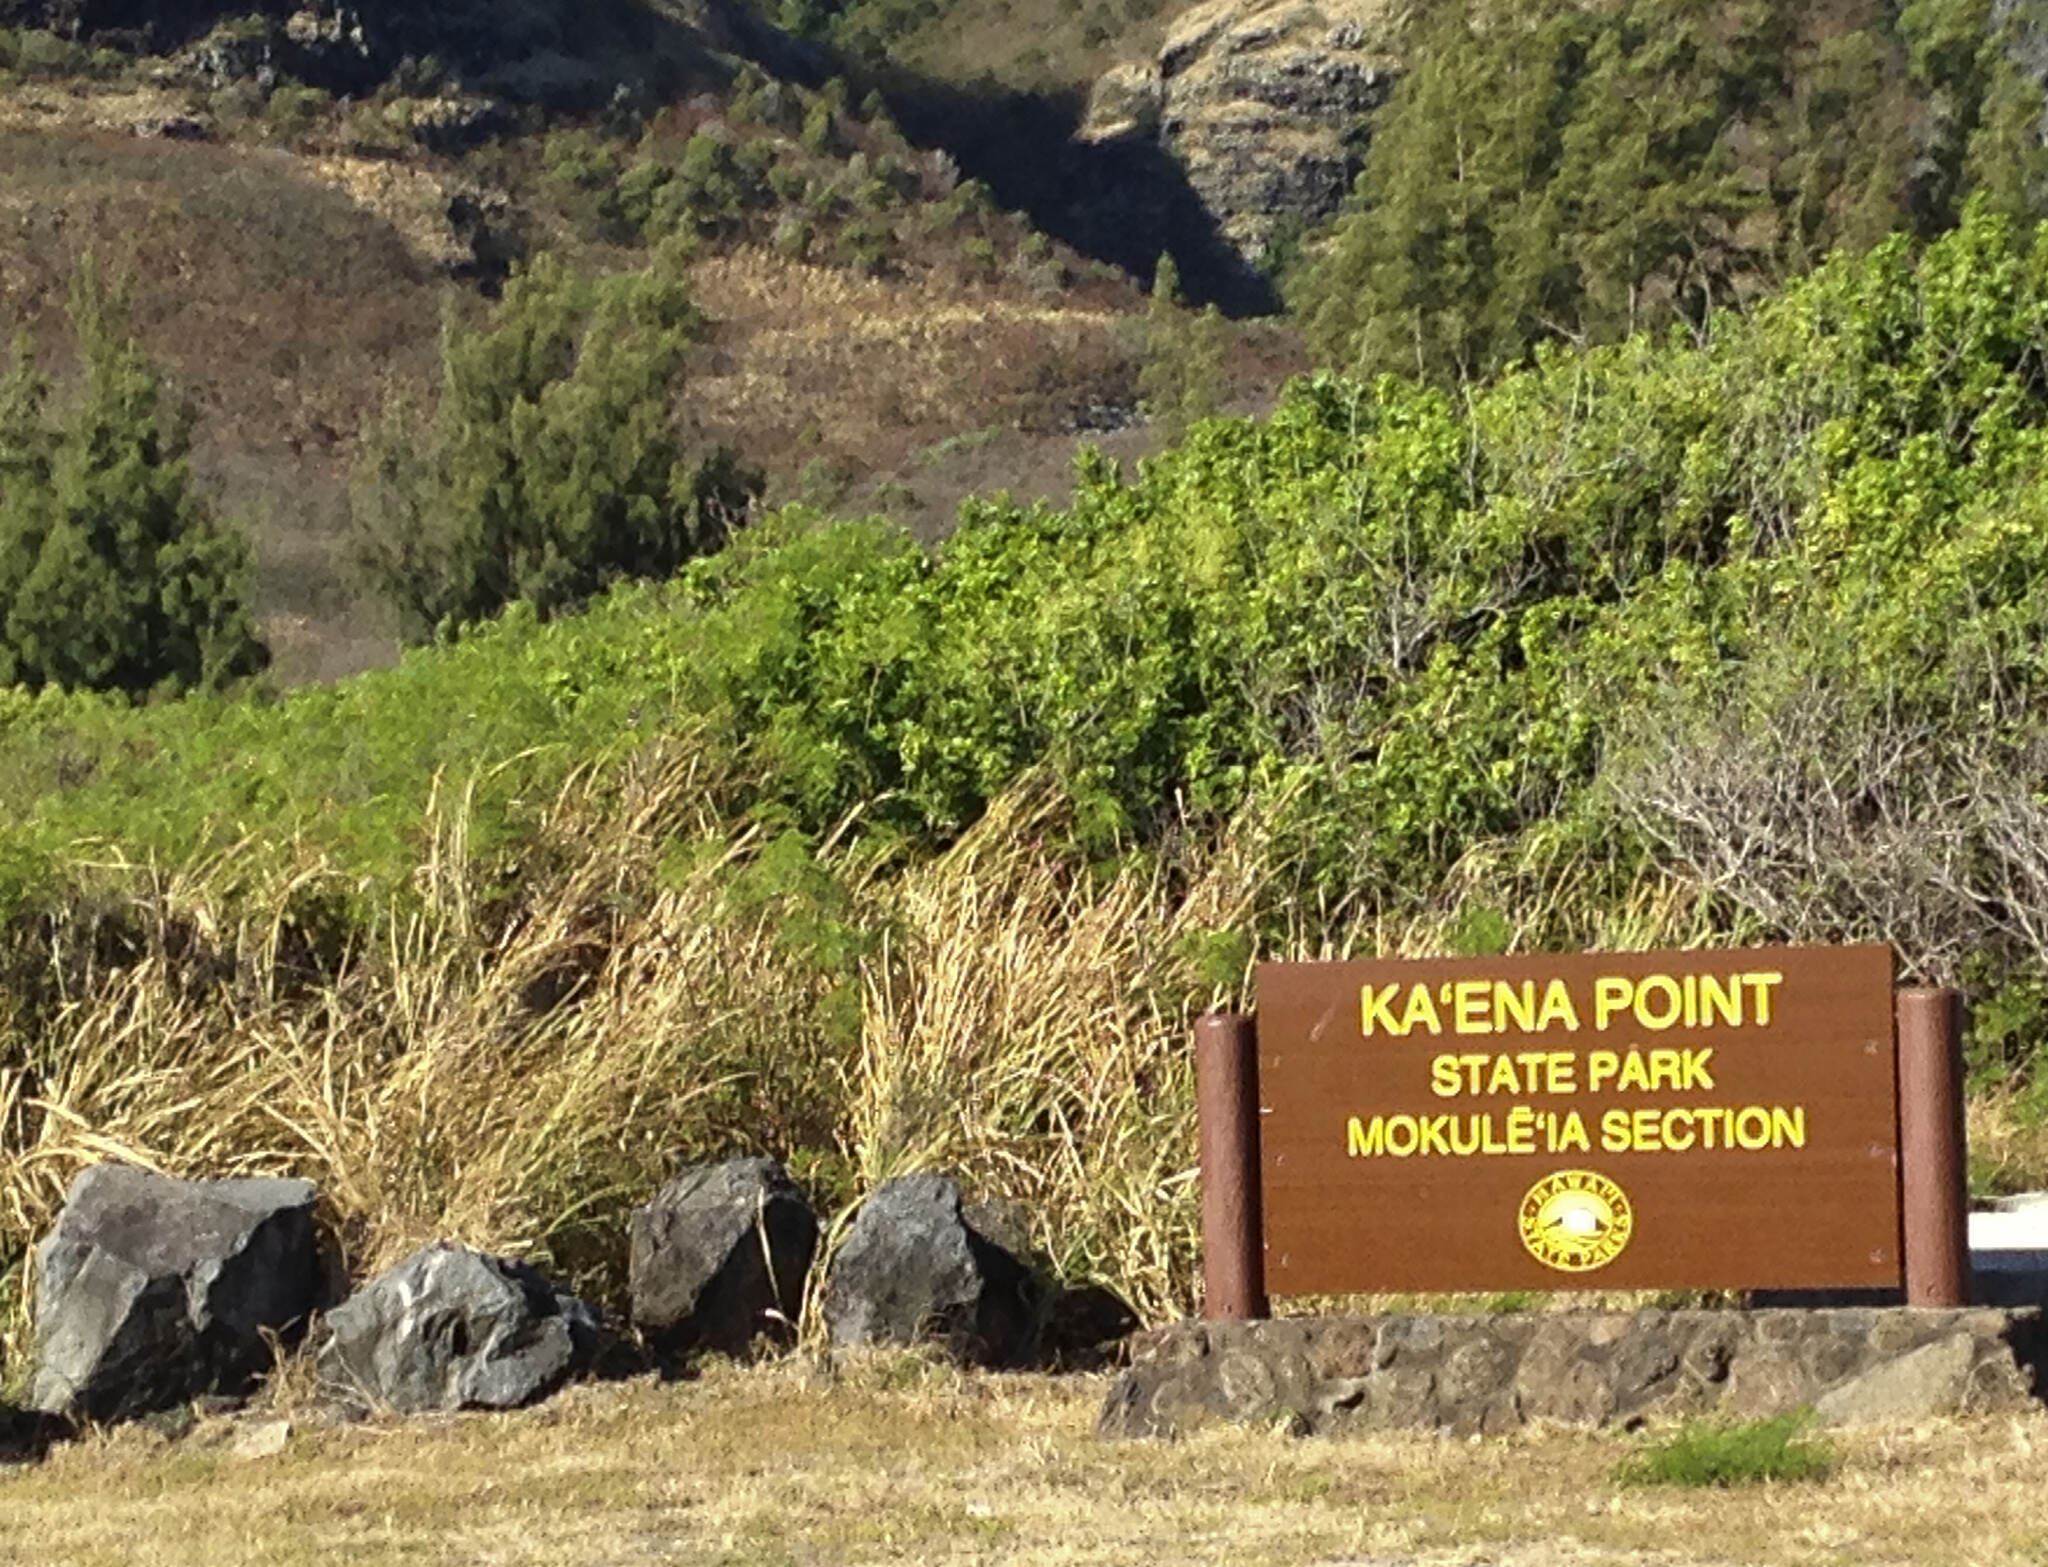 Ka'ena Point Trail  Kaena Point Hike Entrance Ka'ena Point Natural Area Reserve is on the very northwest tip of O'ahu ~ the end of the Waianae Mountain Range. More photos on my website, photosofaloha.com